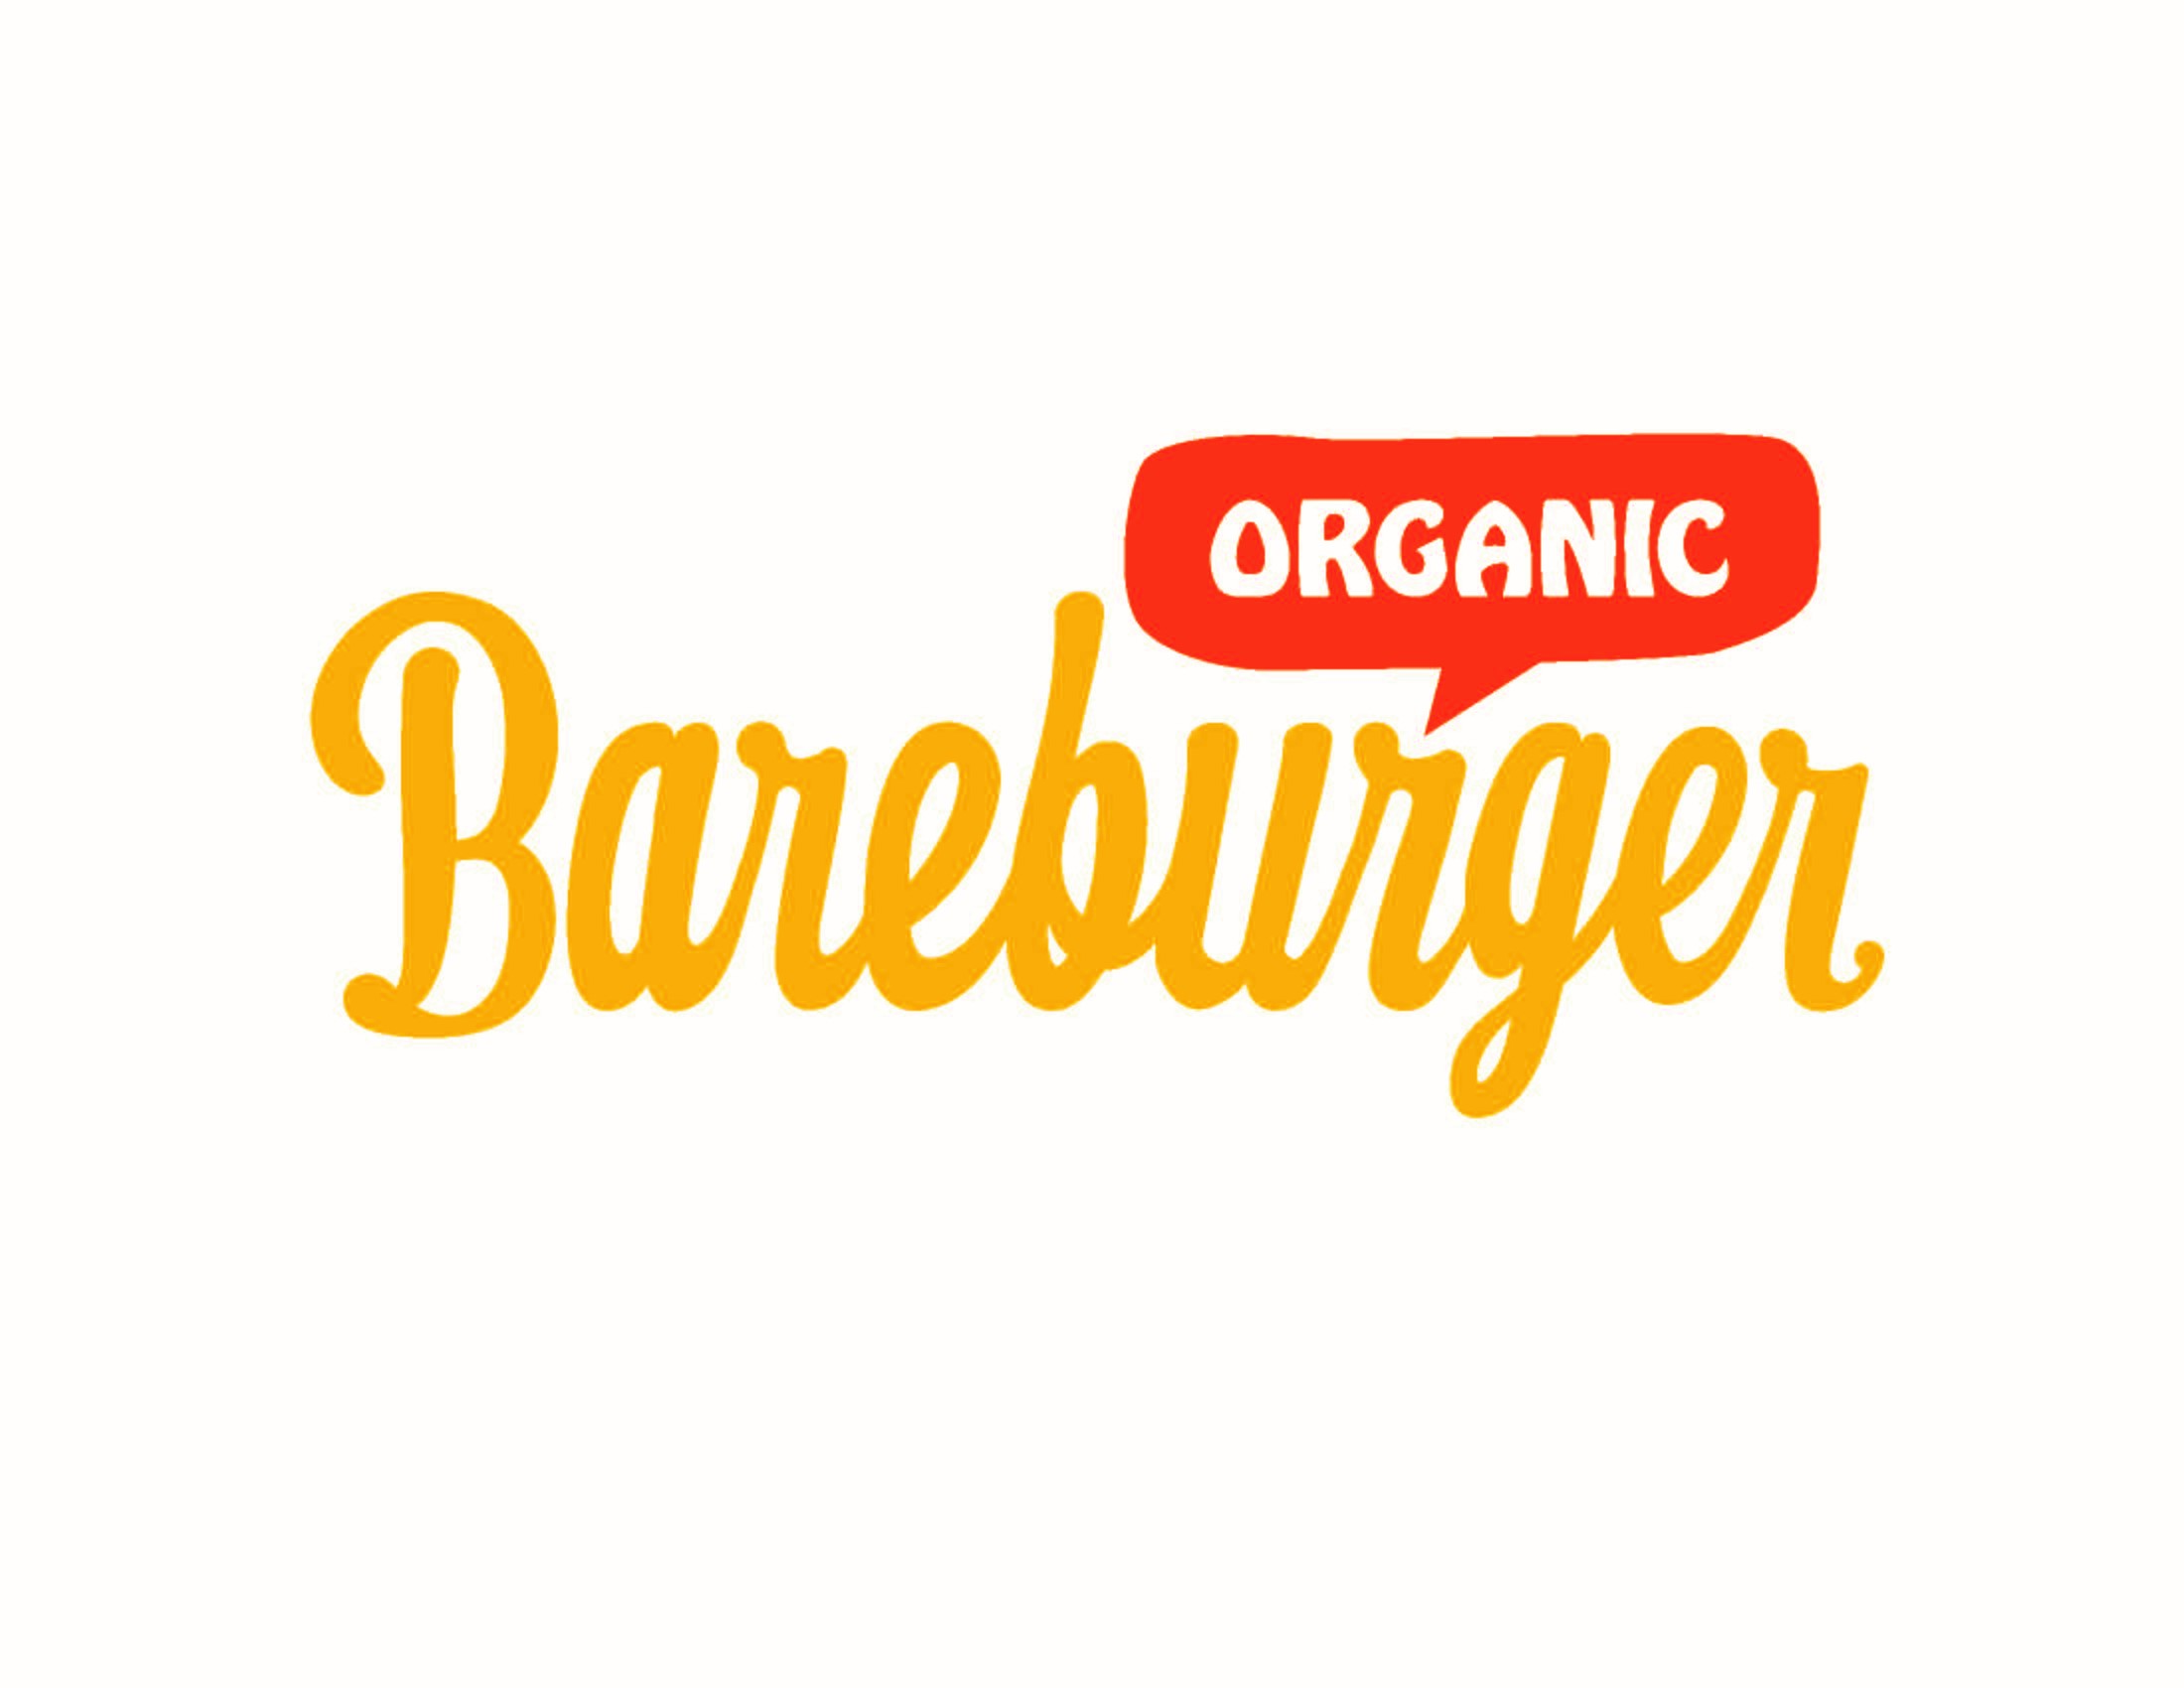 New York City Bareburger coupon